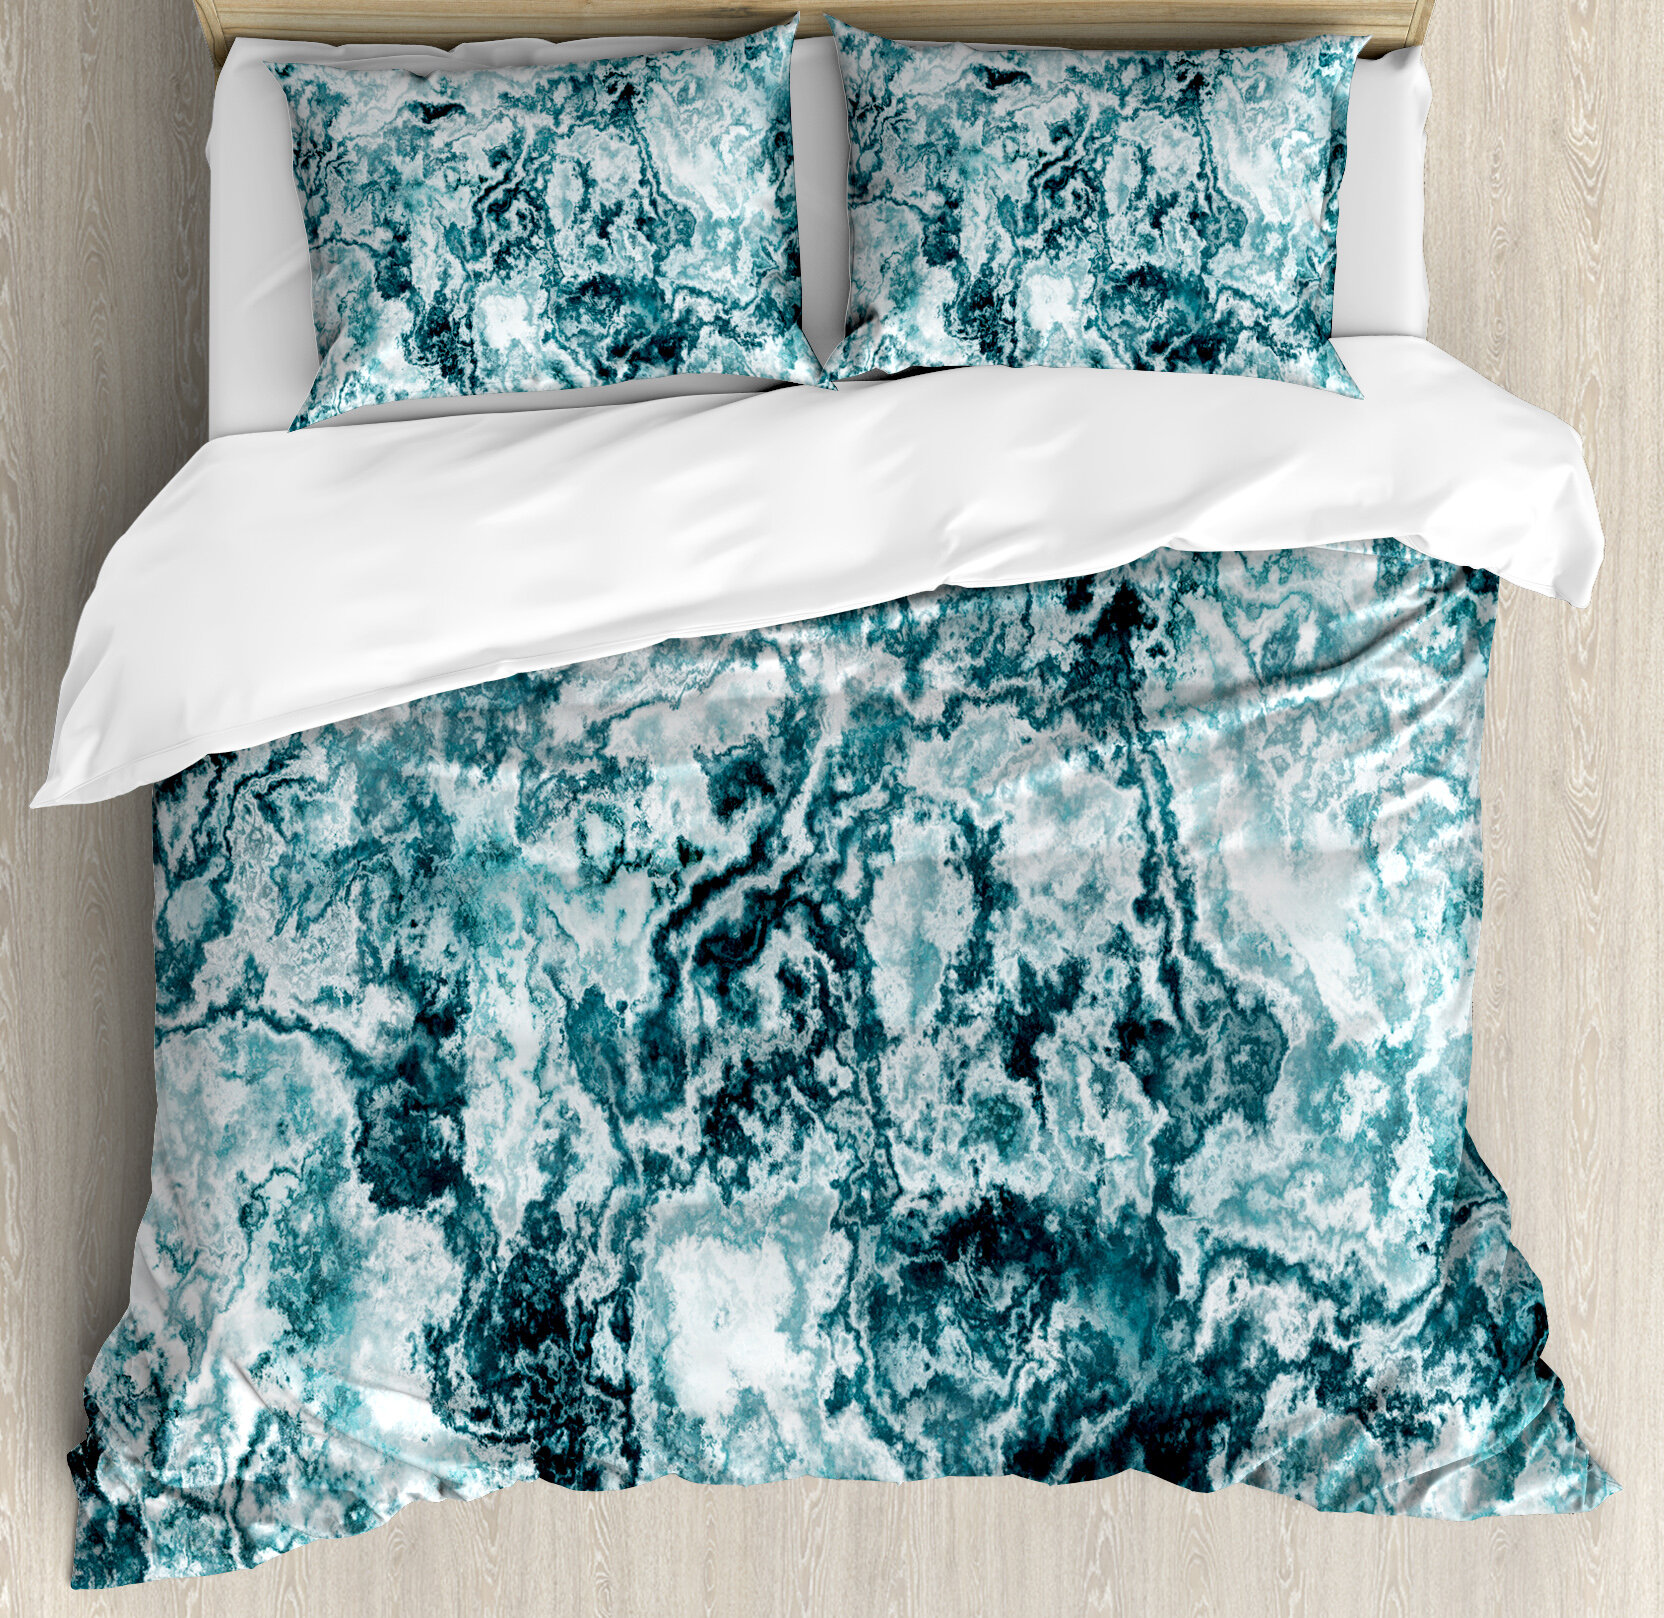 Ambesonne Marble Abstract Rock Texture Modern Stylized Retro